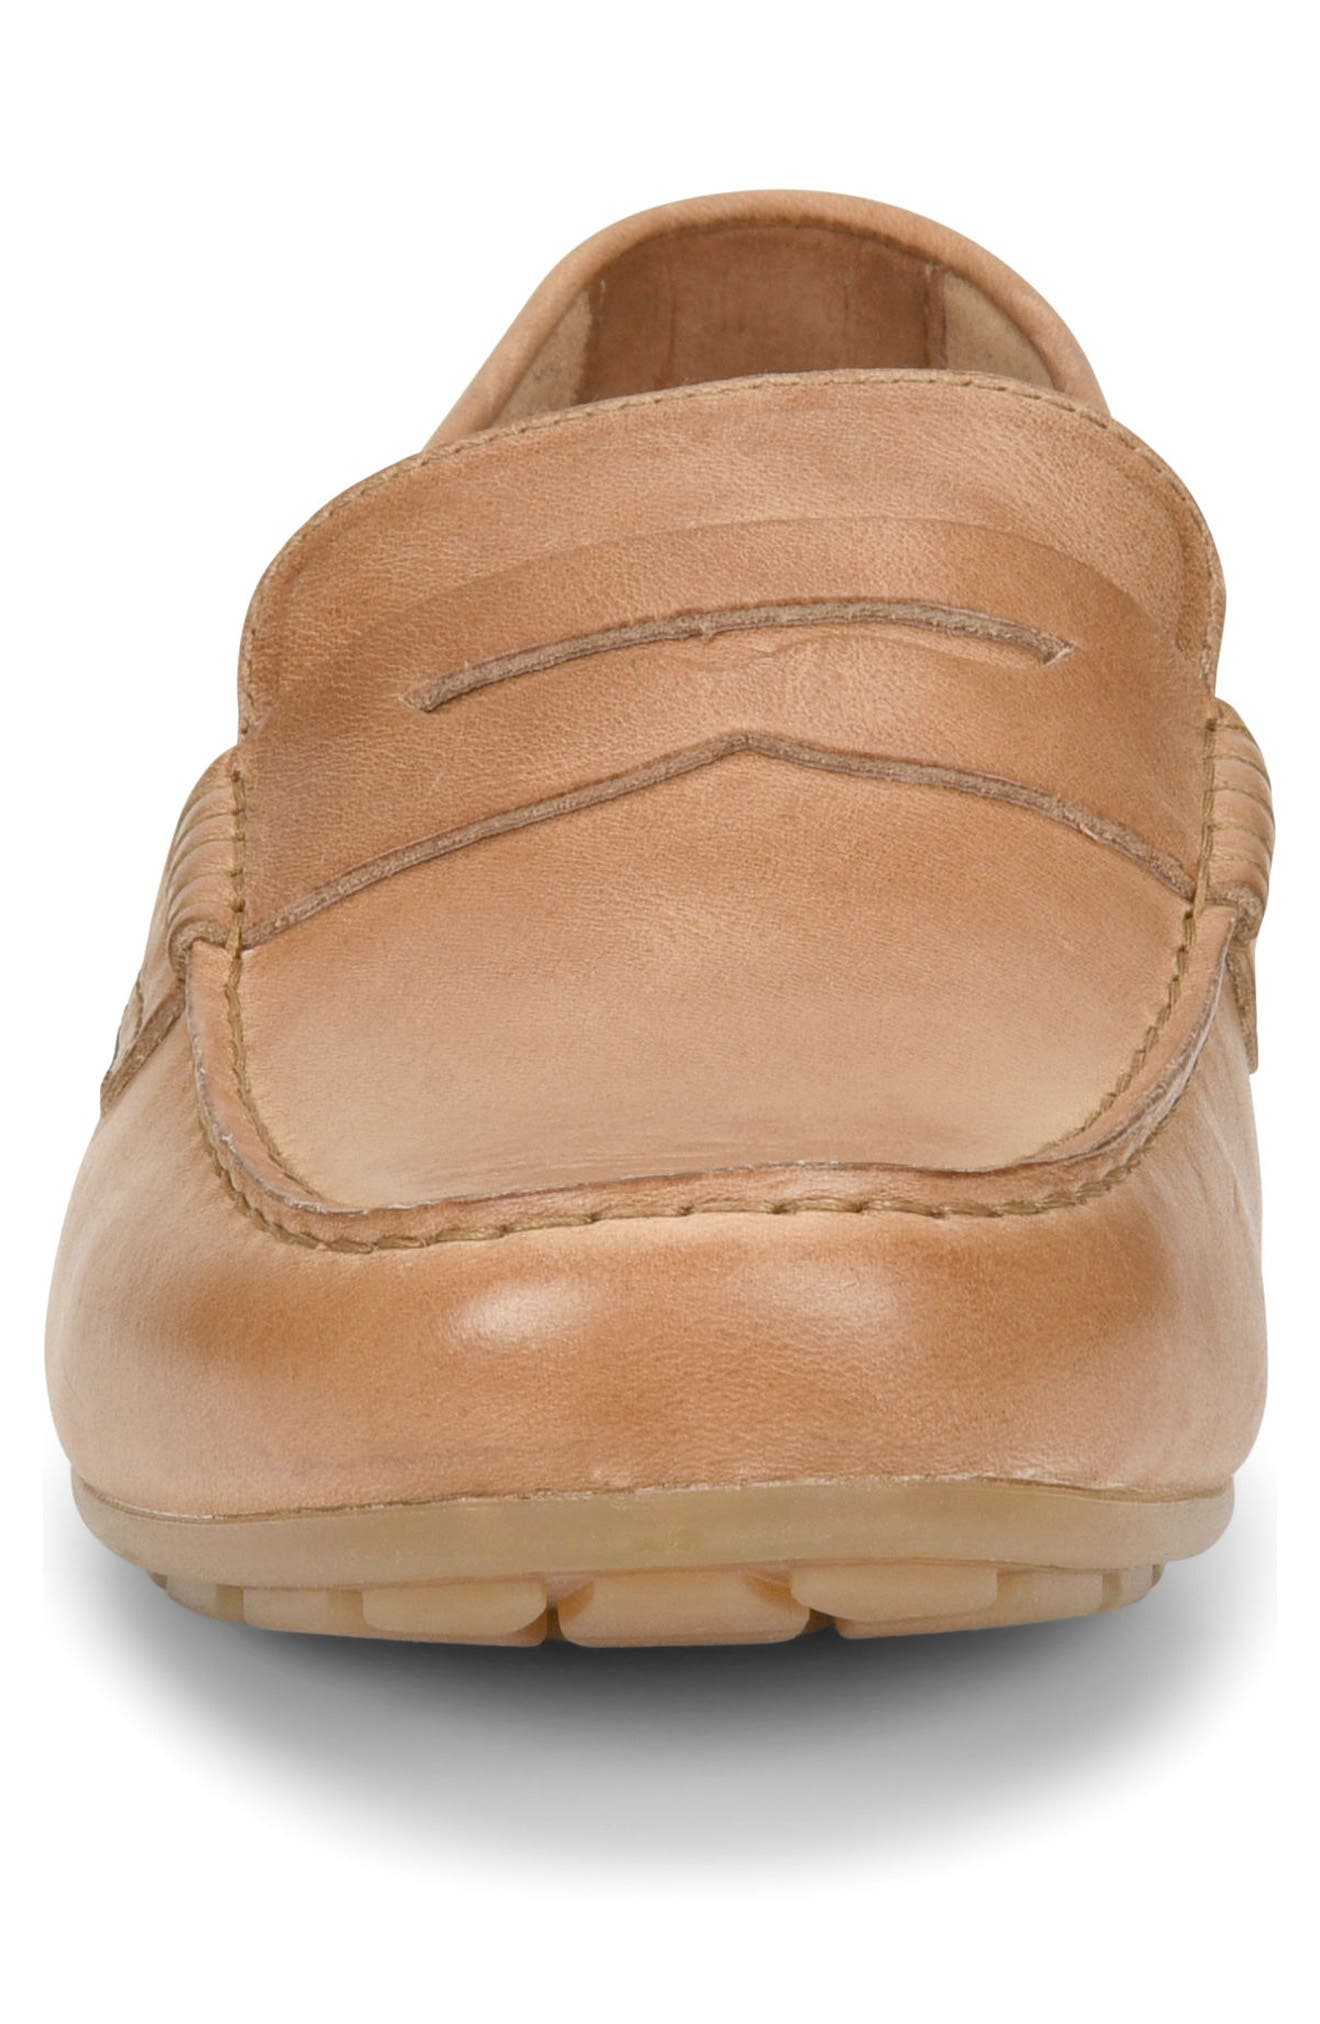 Andes Driving Shoe,                             Alternate thumbnail 16, color,